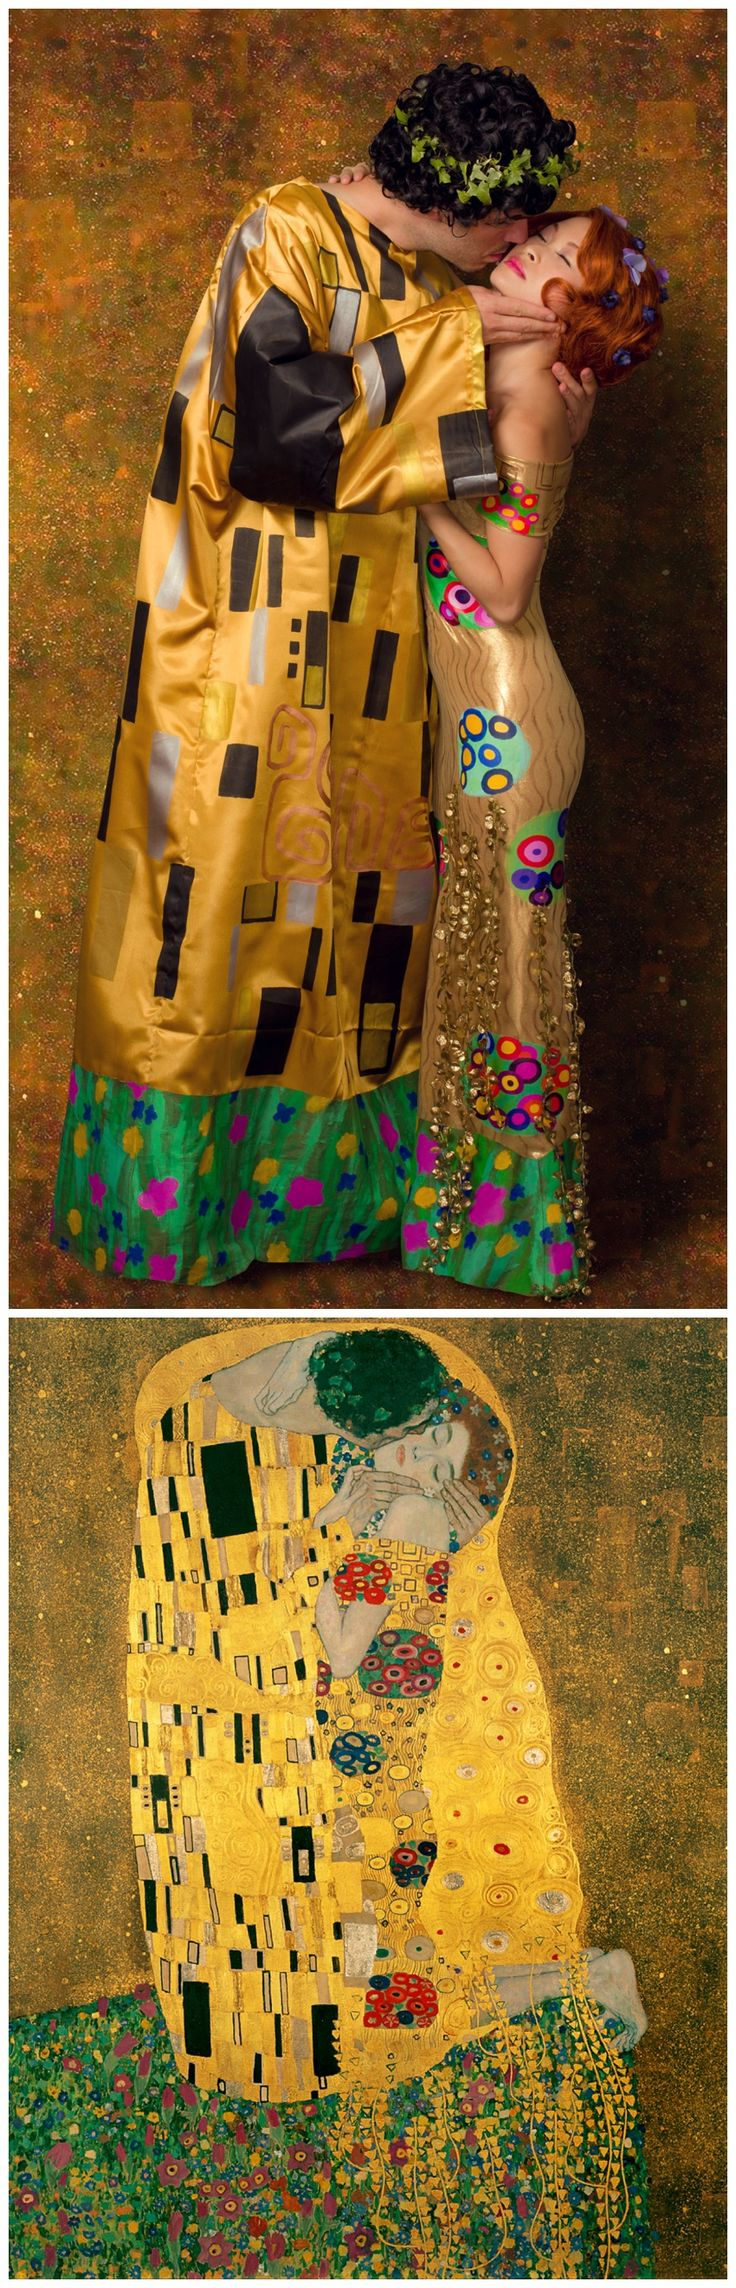 "Recreation of Gustav Klimt's painting ""The Kiss"" / Halloween Costume #couple #halloween #costume #idea"